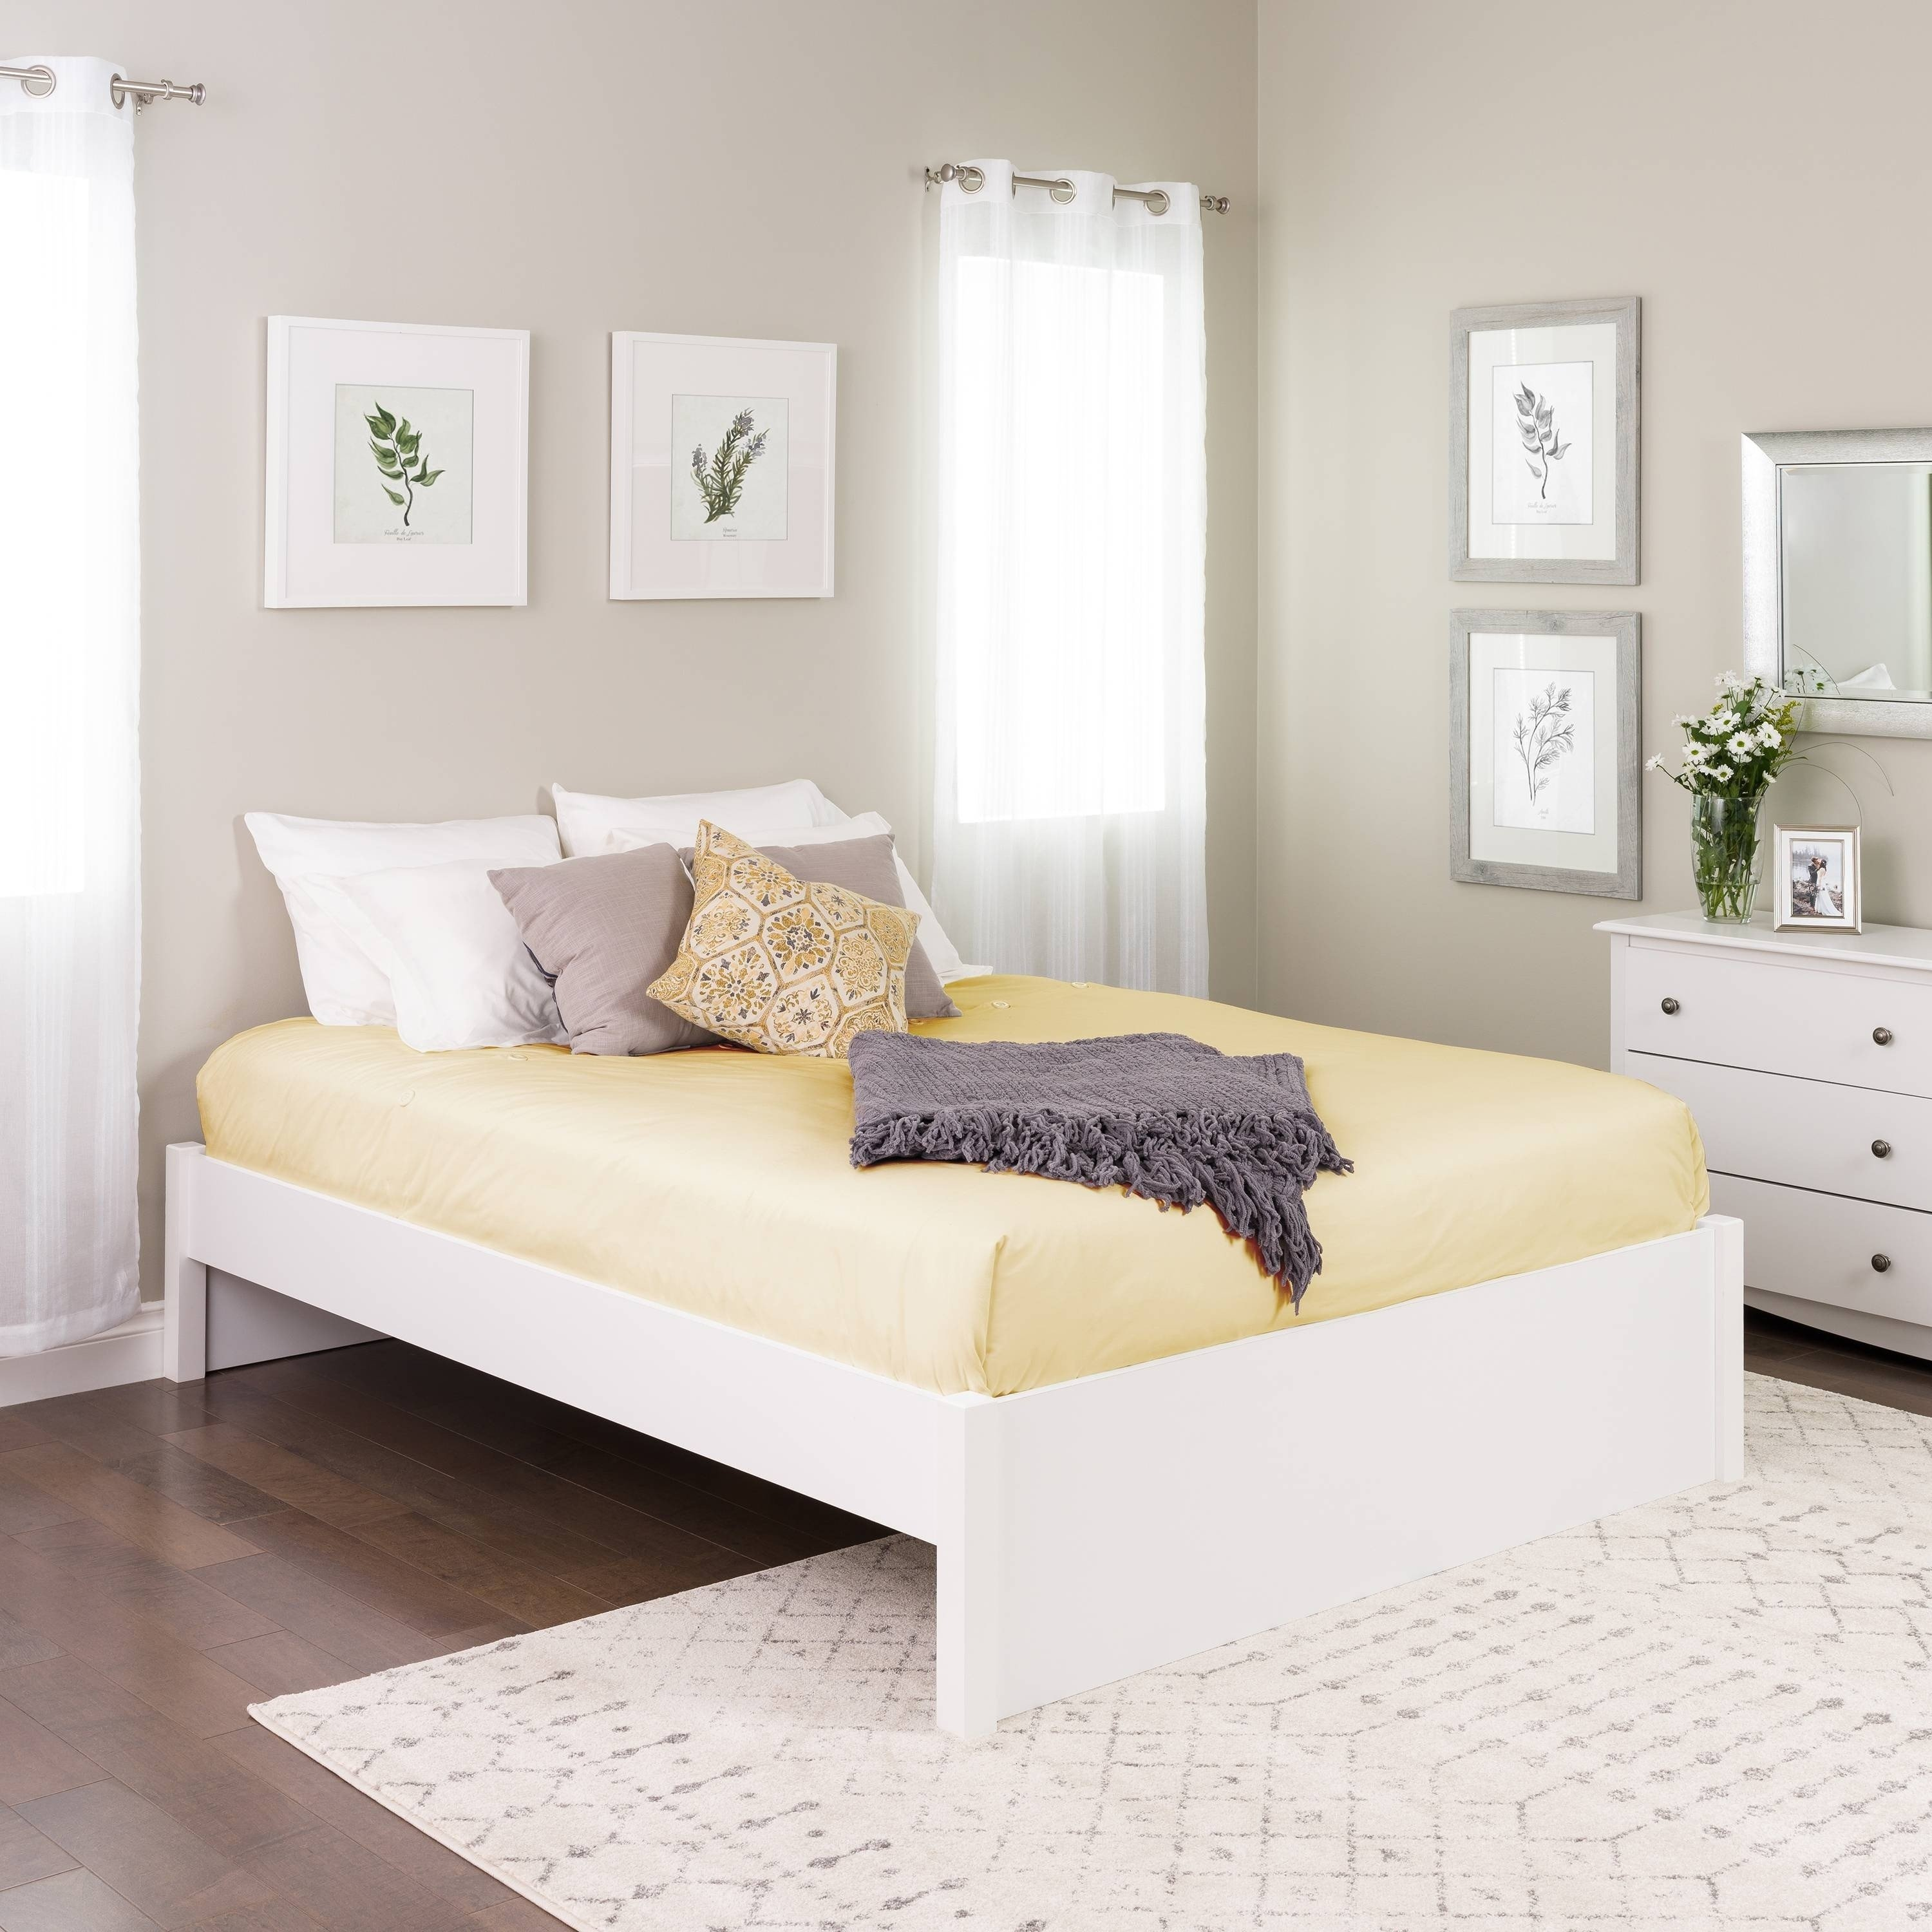 South Shore Bedroom Set Inspirational Prepac Queen Select 4 Post Platform Bed with Optional Drawers